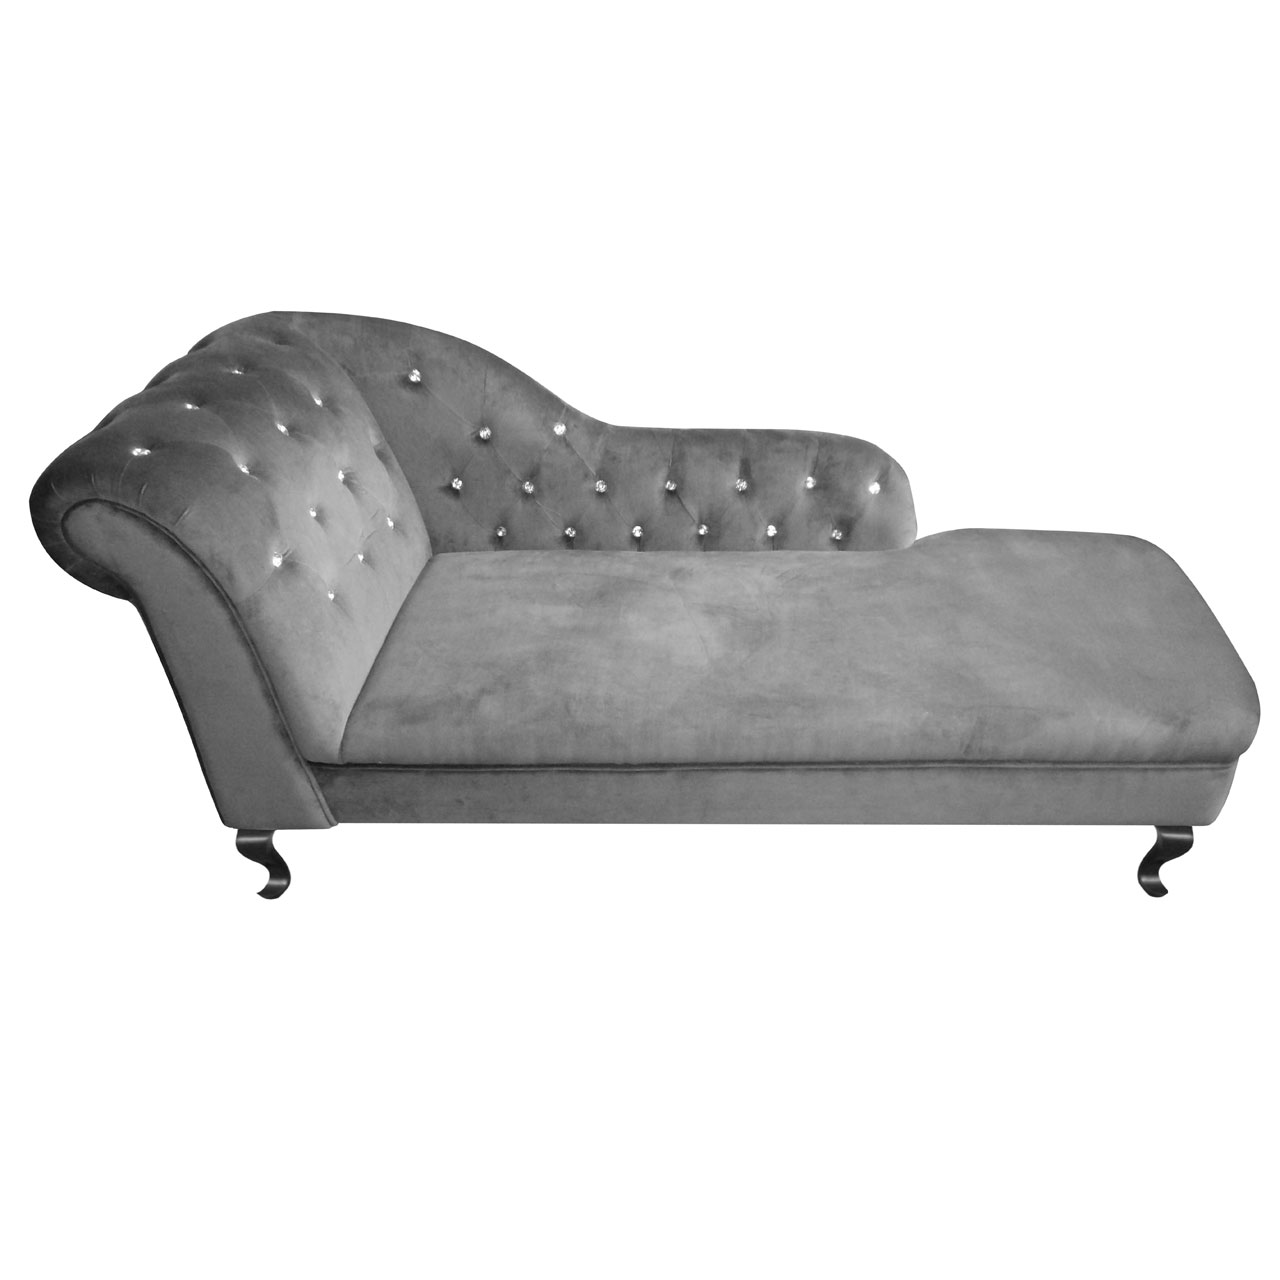 Chesterfield chaise lounge charcoal grey velvet diamante for Chaise chesterfield